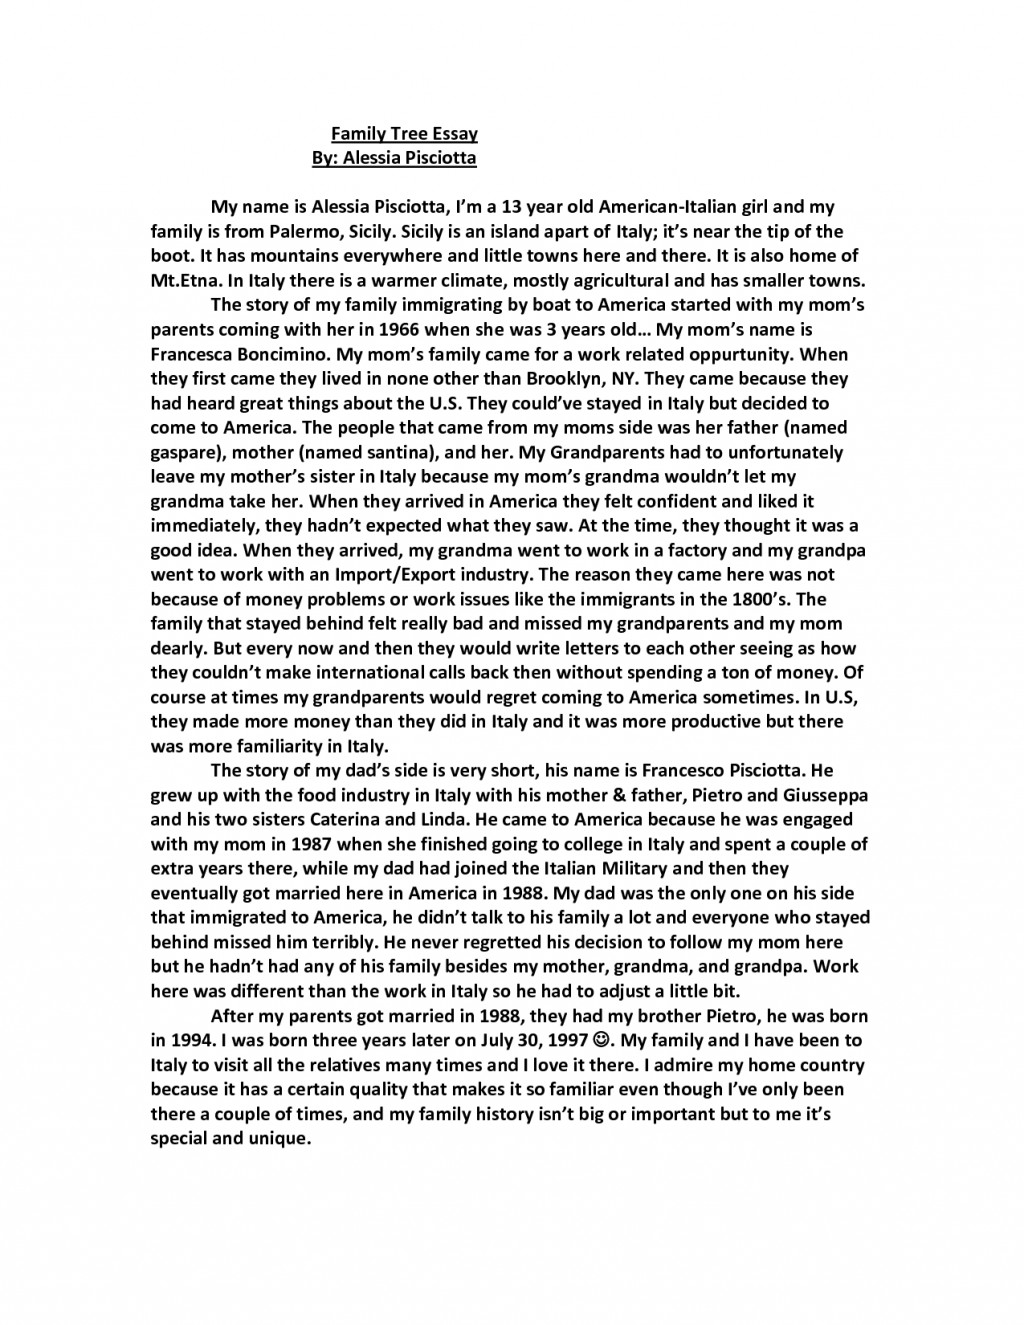 004 Family History Essay Example Marvelous Outline Examples Conclusion Large